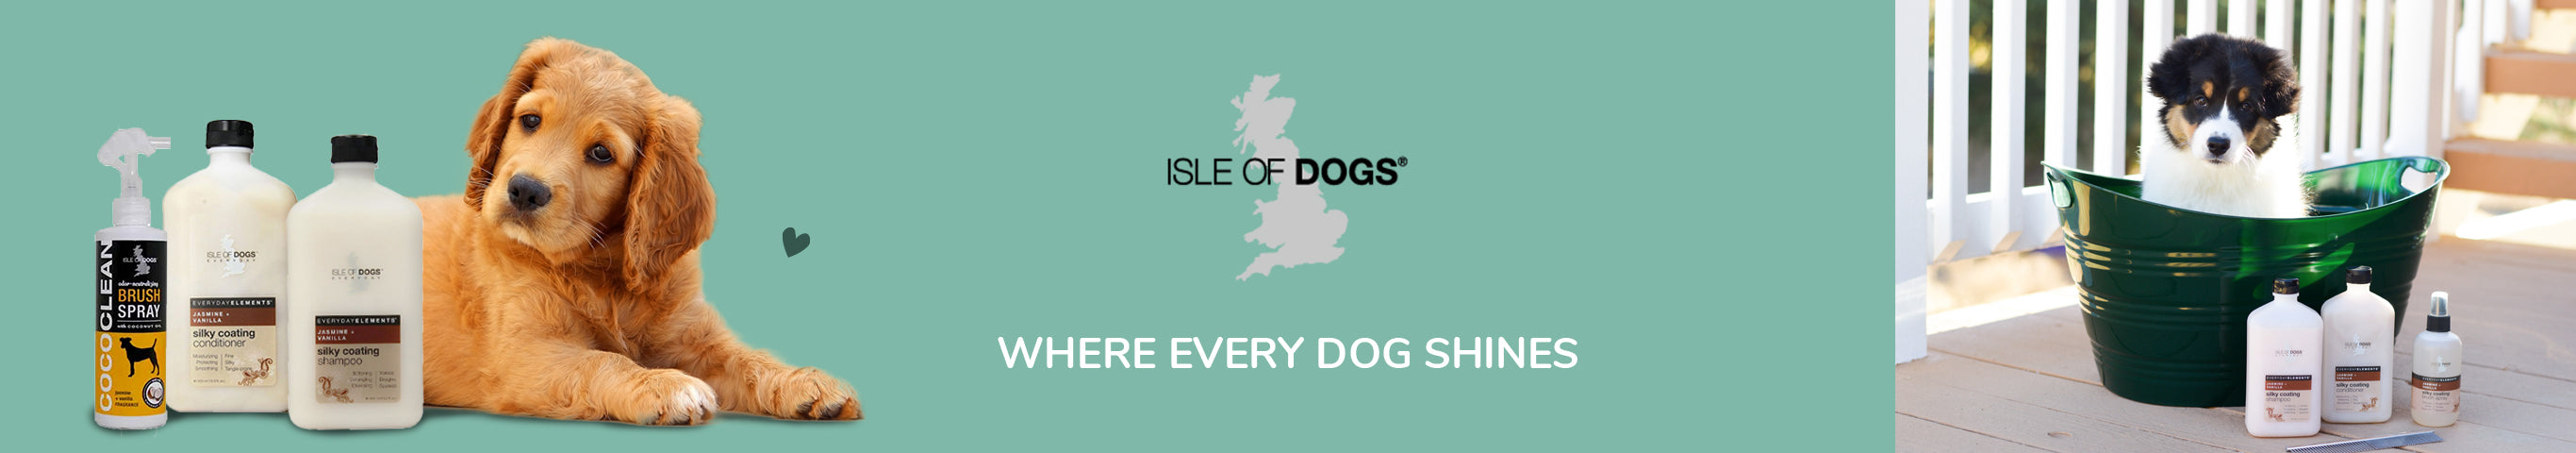 Isle of Dogs Premium Dog Grooming Products